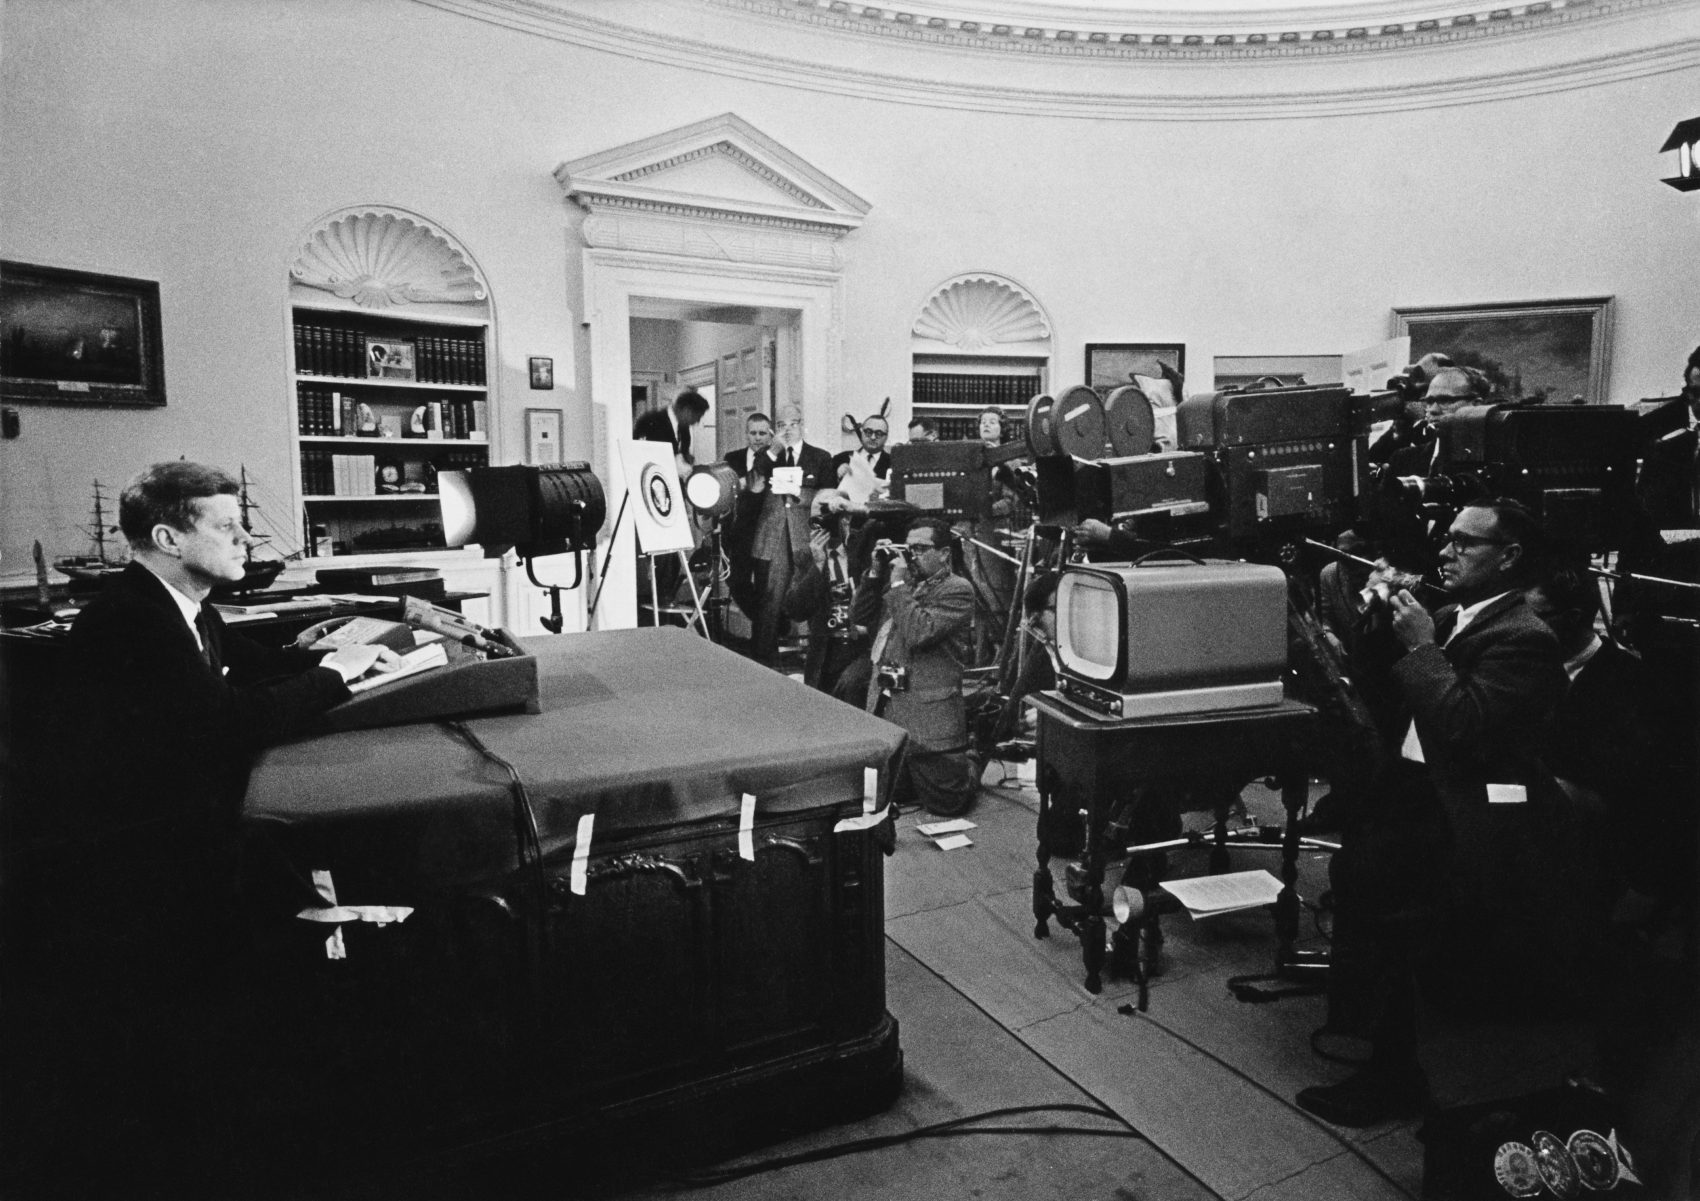 President John F. Kennedy announces on television the strategic blockade of Cuba, and his warning to the Soviet Union about missile sanctions during the Cuban missile crisis, on Oct. 22, 1962. (Keystone/Getty Images)